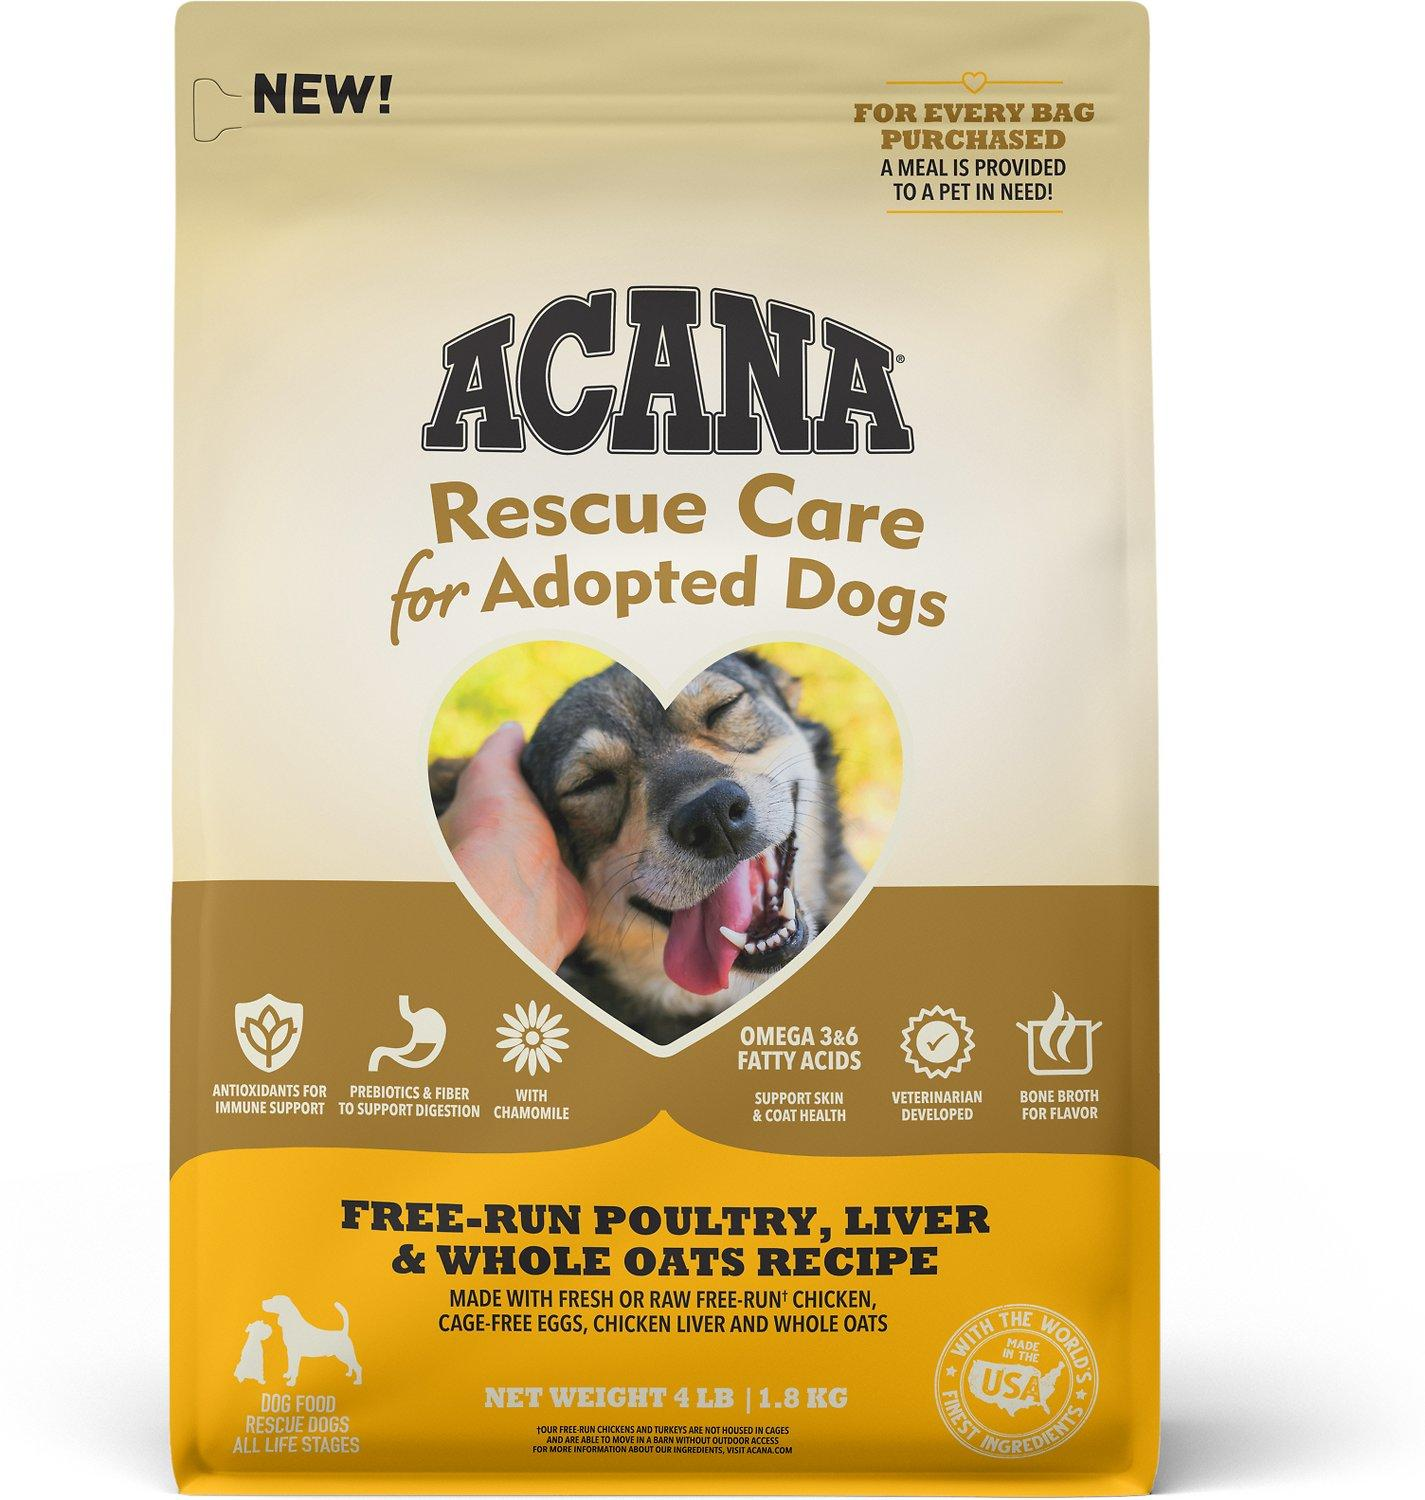 ACANA Rescue Care for Adopted Dogs Poultry, Liver & Oats Dry Dog Food, 4-lb